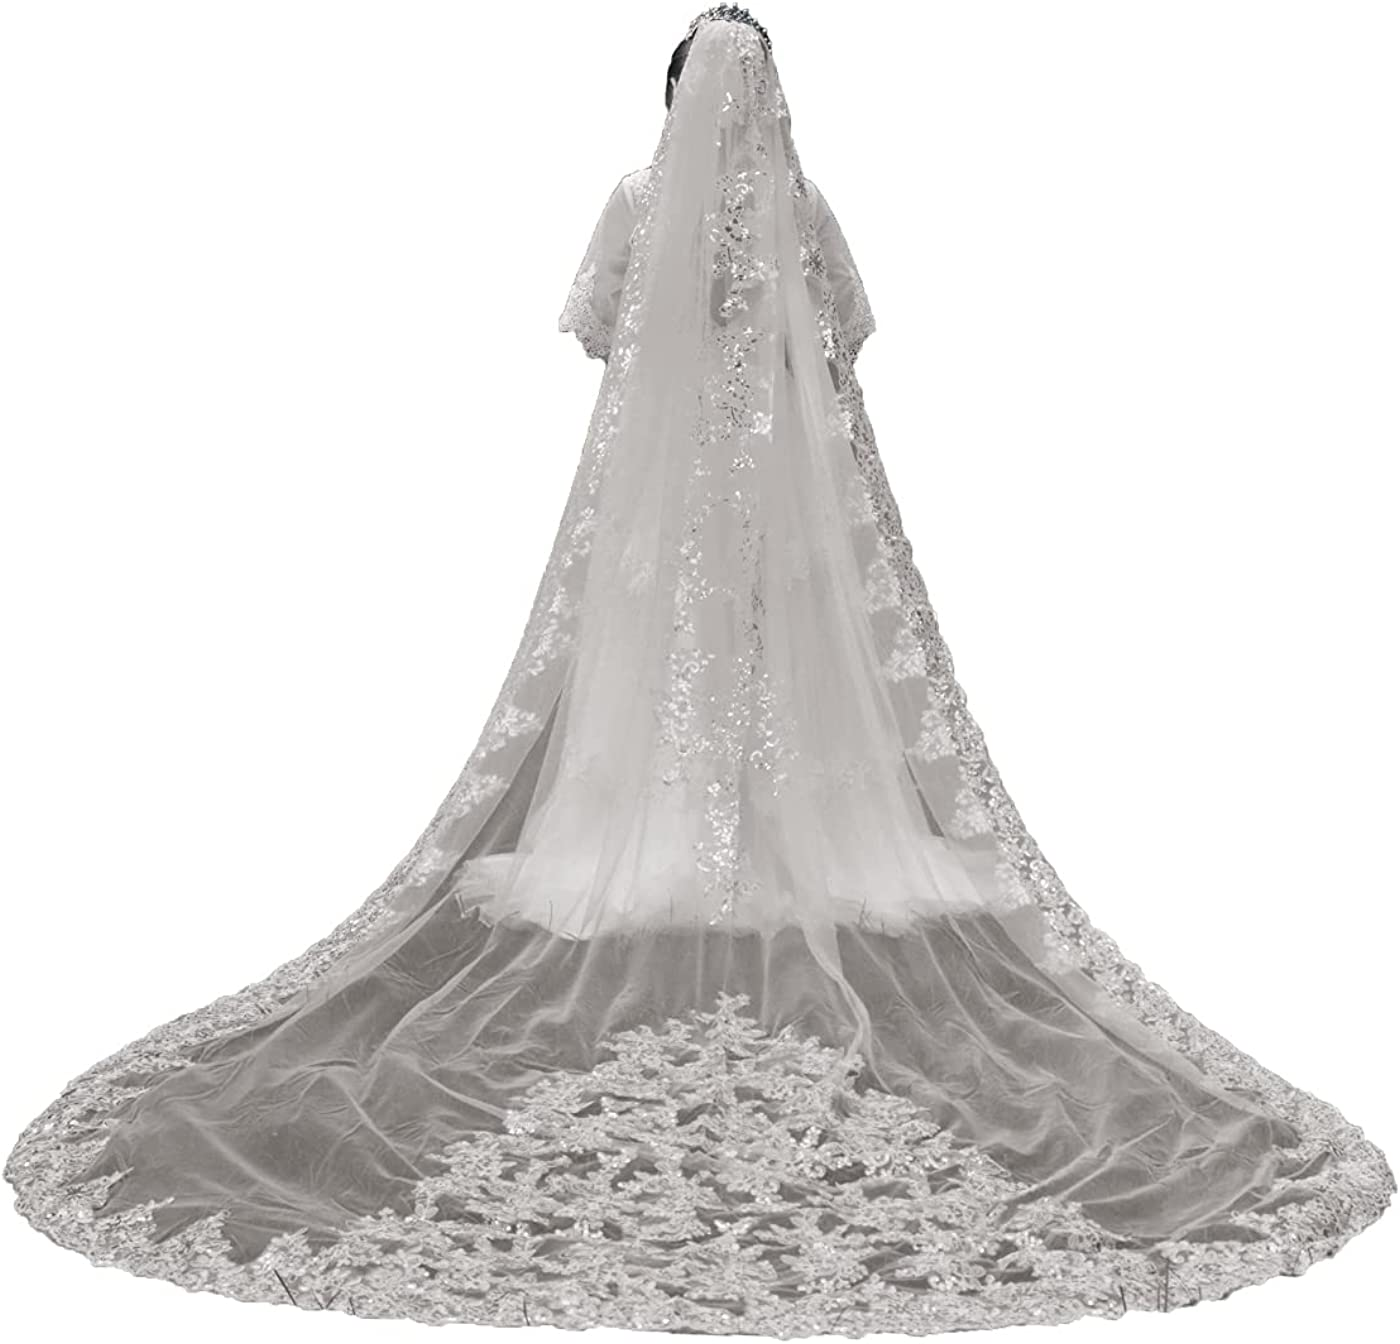 Weddings Veils 1 Tier Sequins Egde Long Lace Full Floral Cathedral with Comb